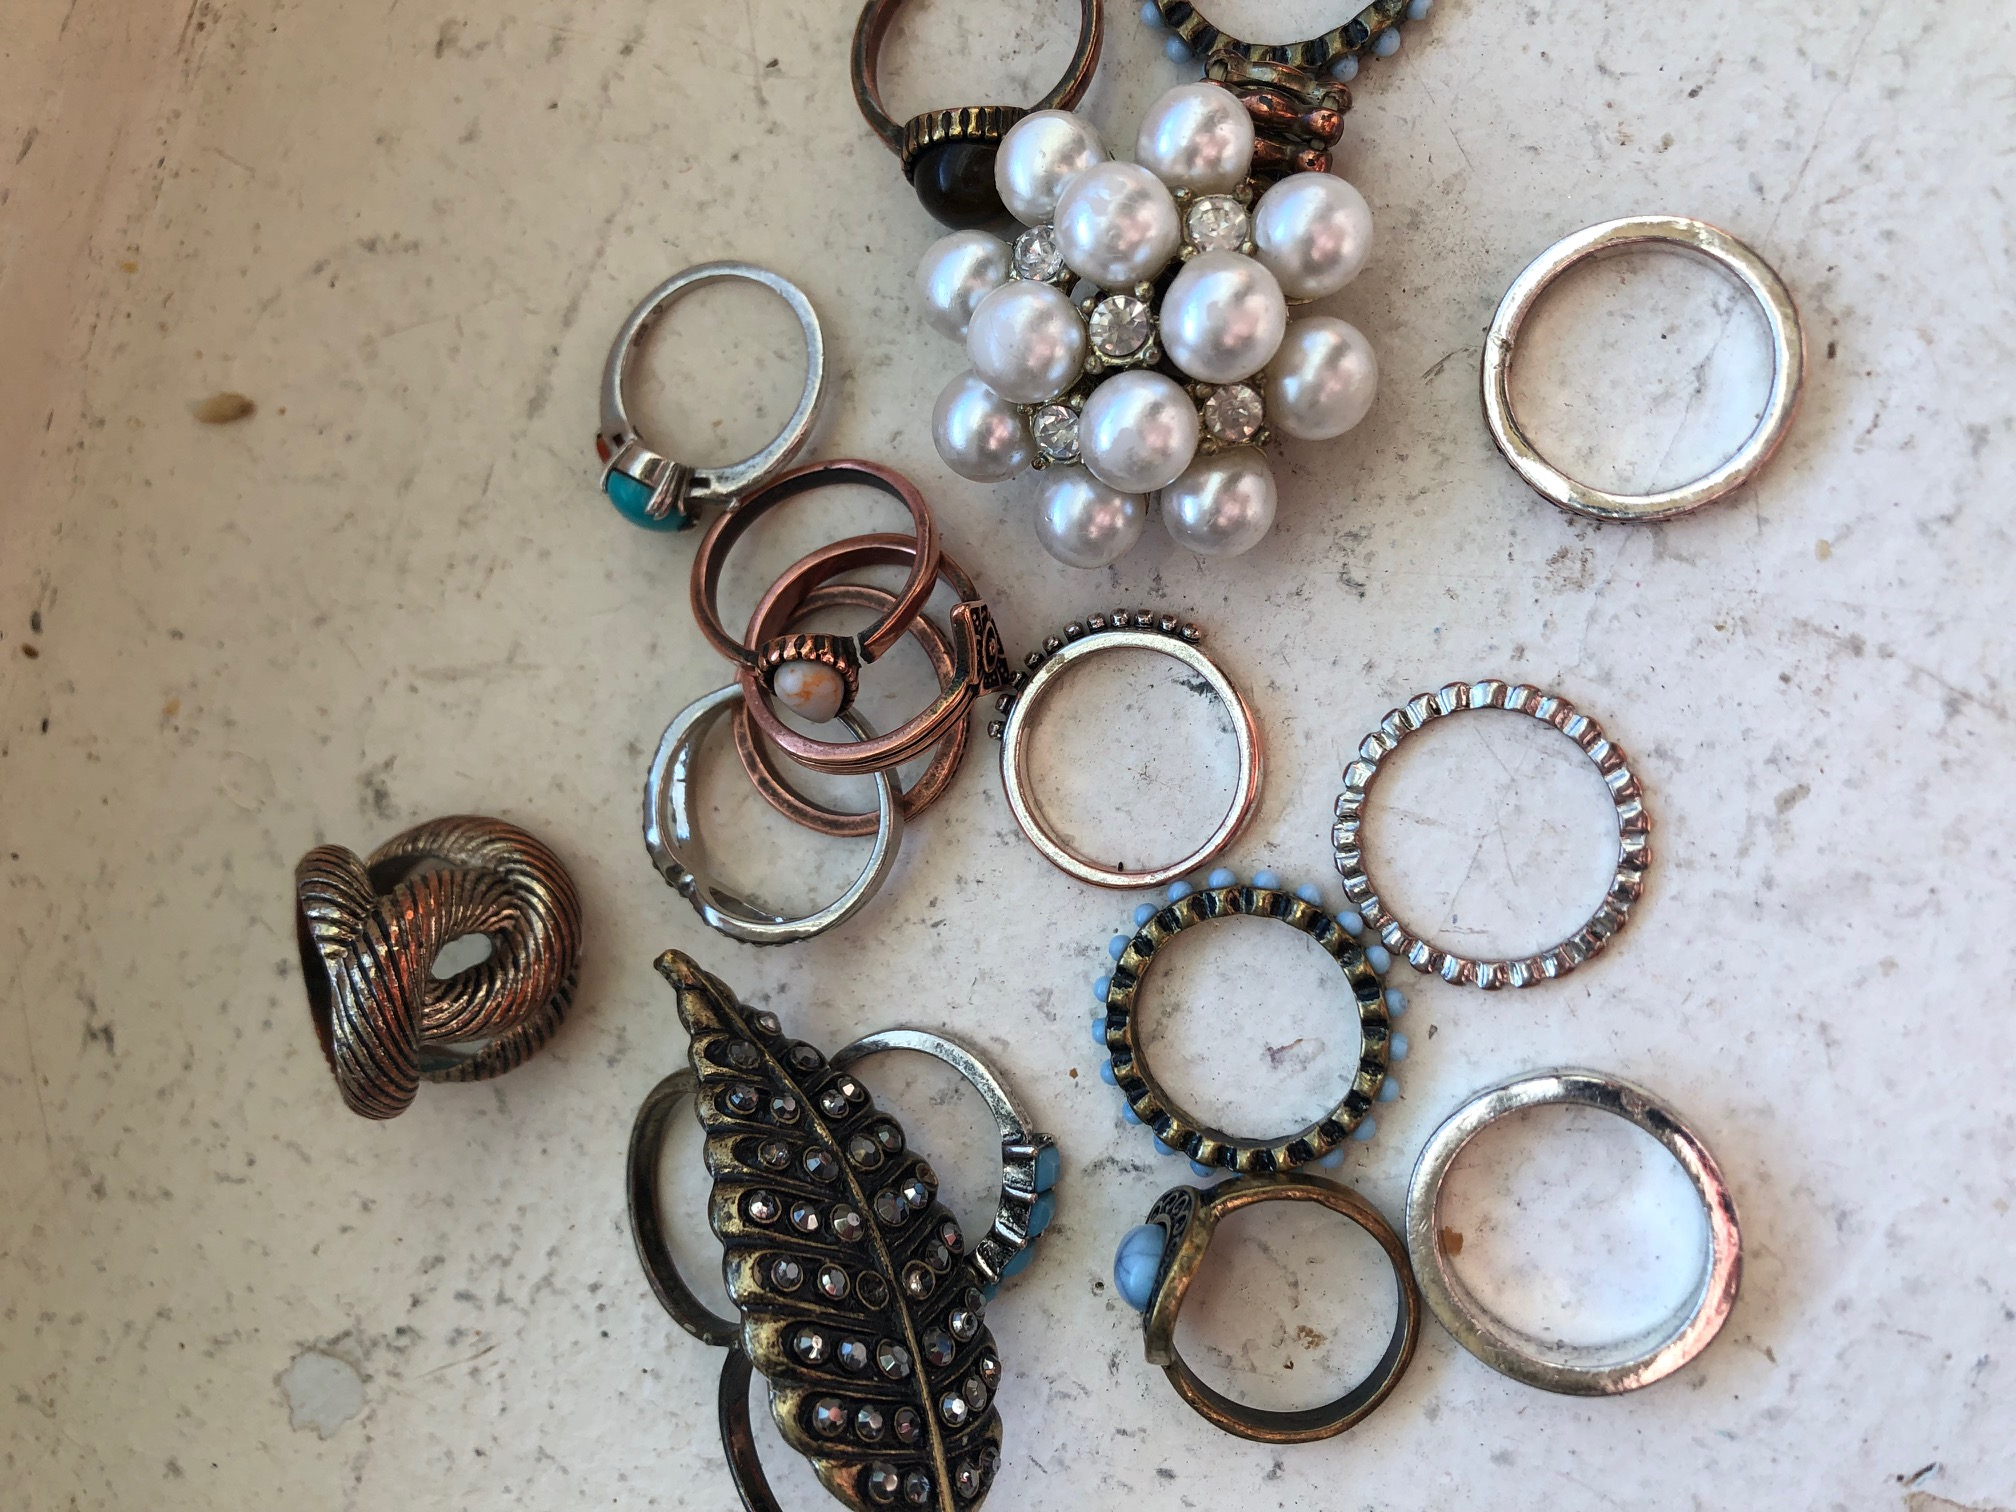 Jewelry Collection: Rings